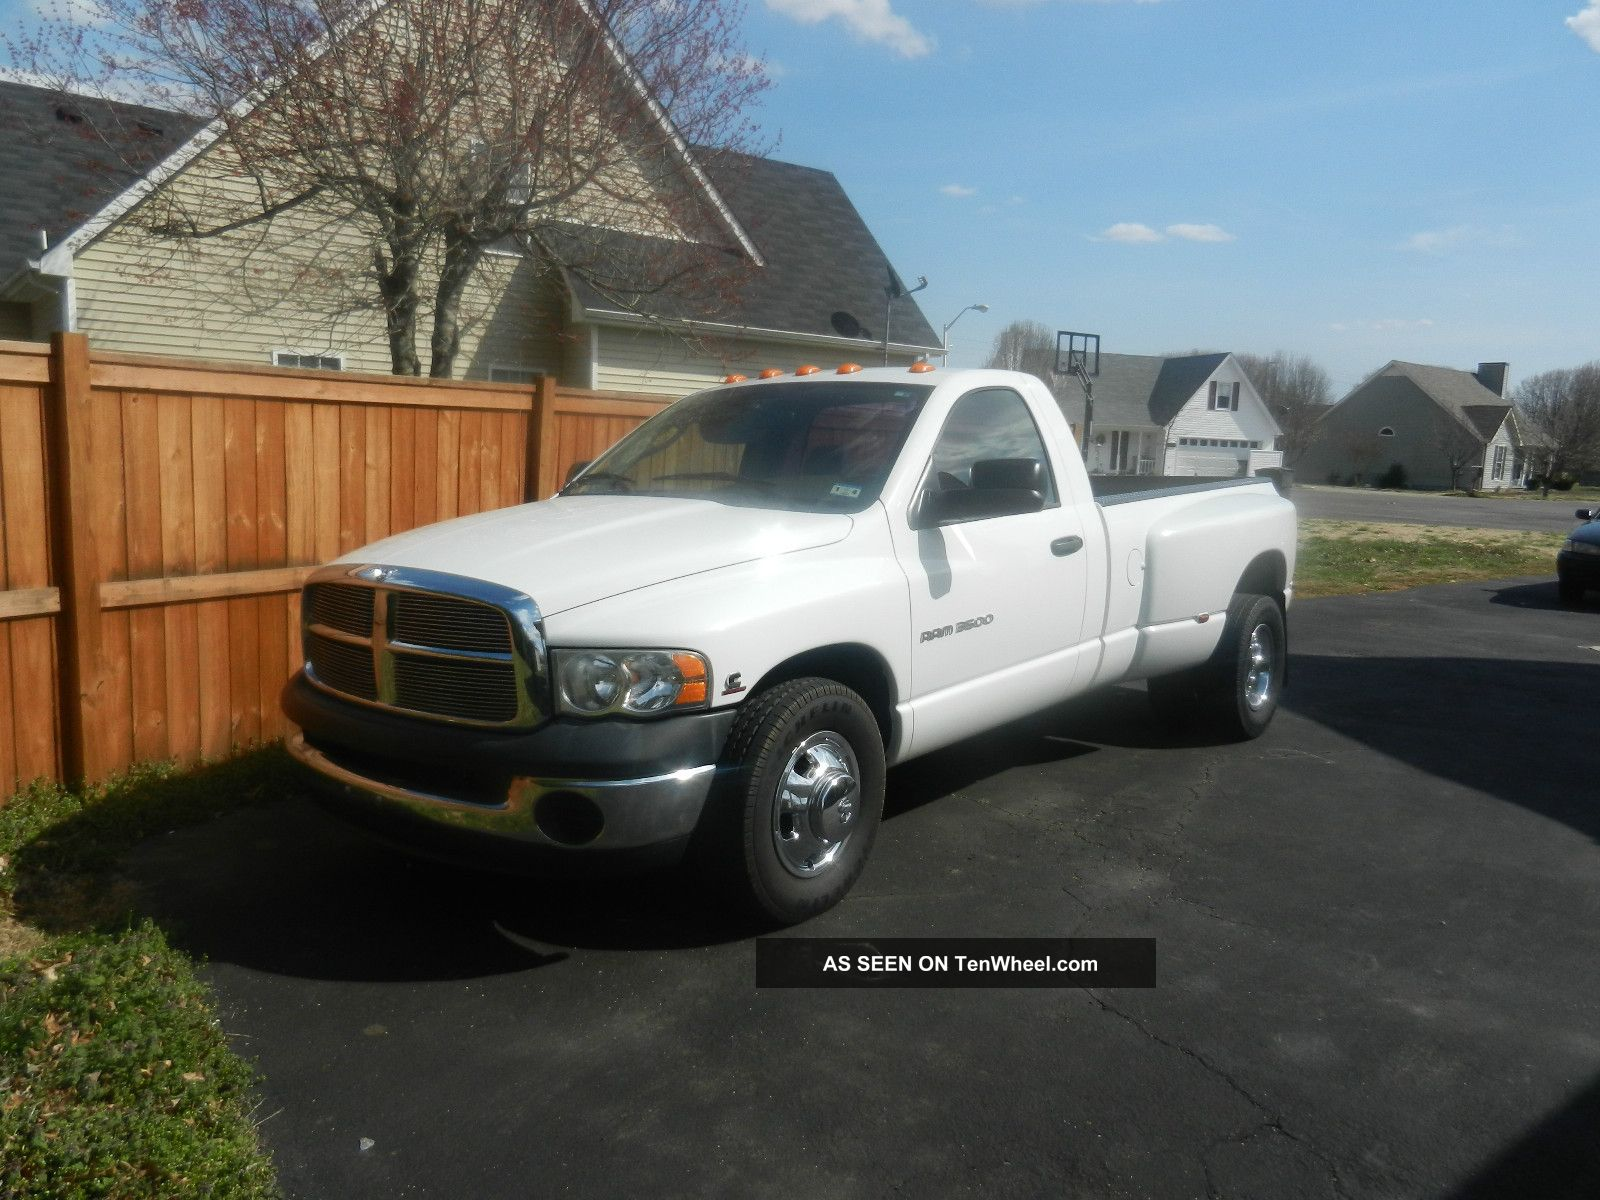 2004 dodge ram 3500 turbo diesel 5 9 l cummins. Black Bedroom Furniture Sets. Home Design Ideas